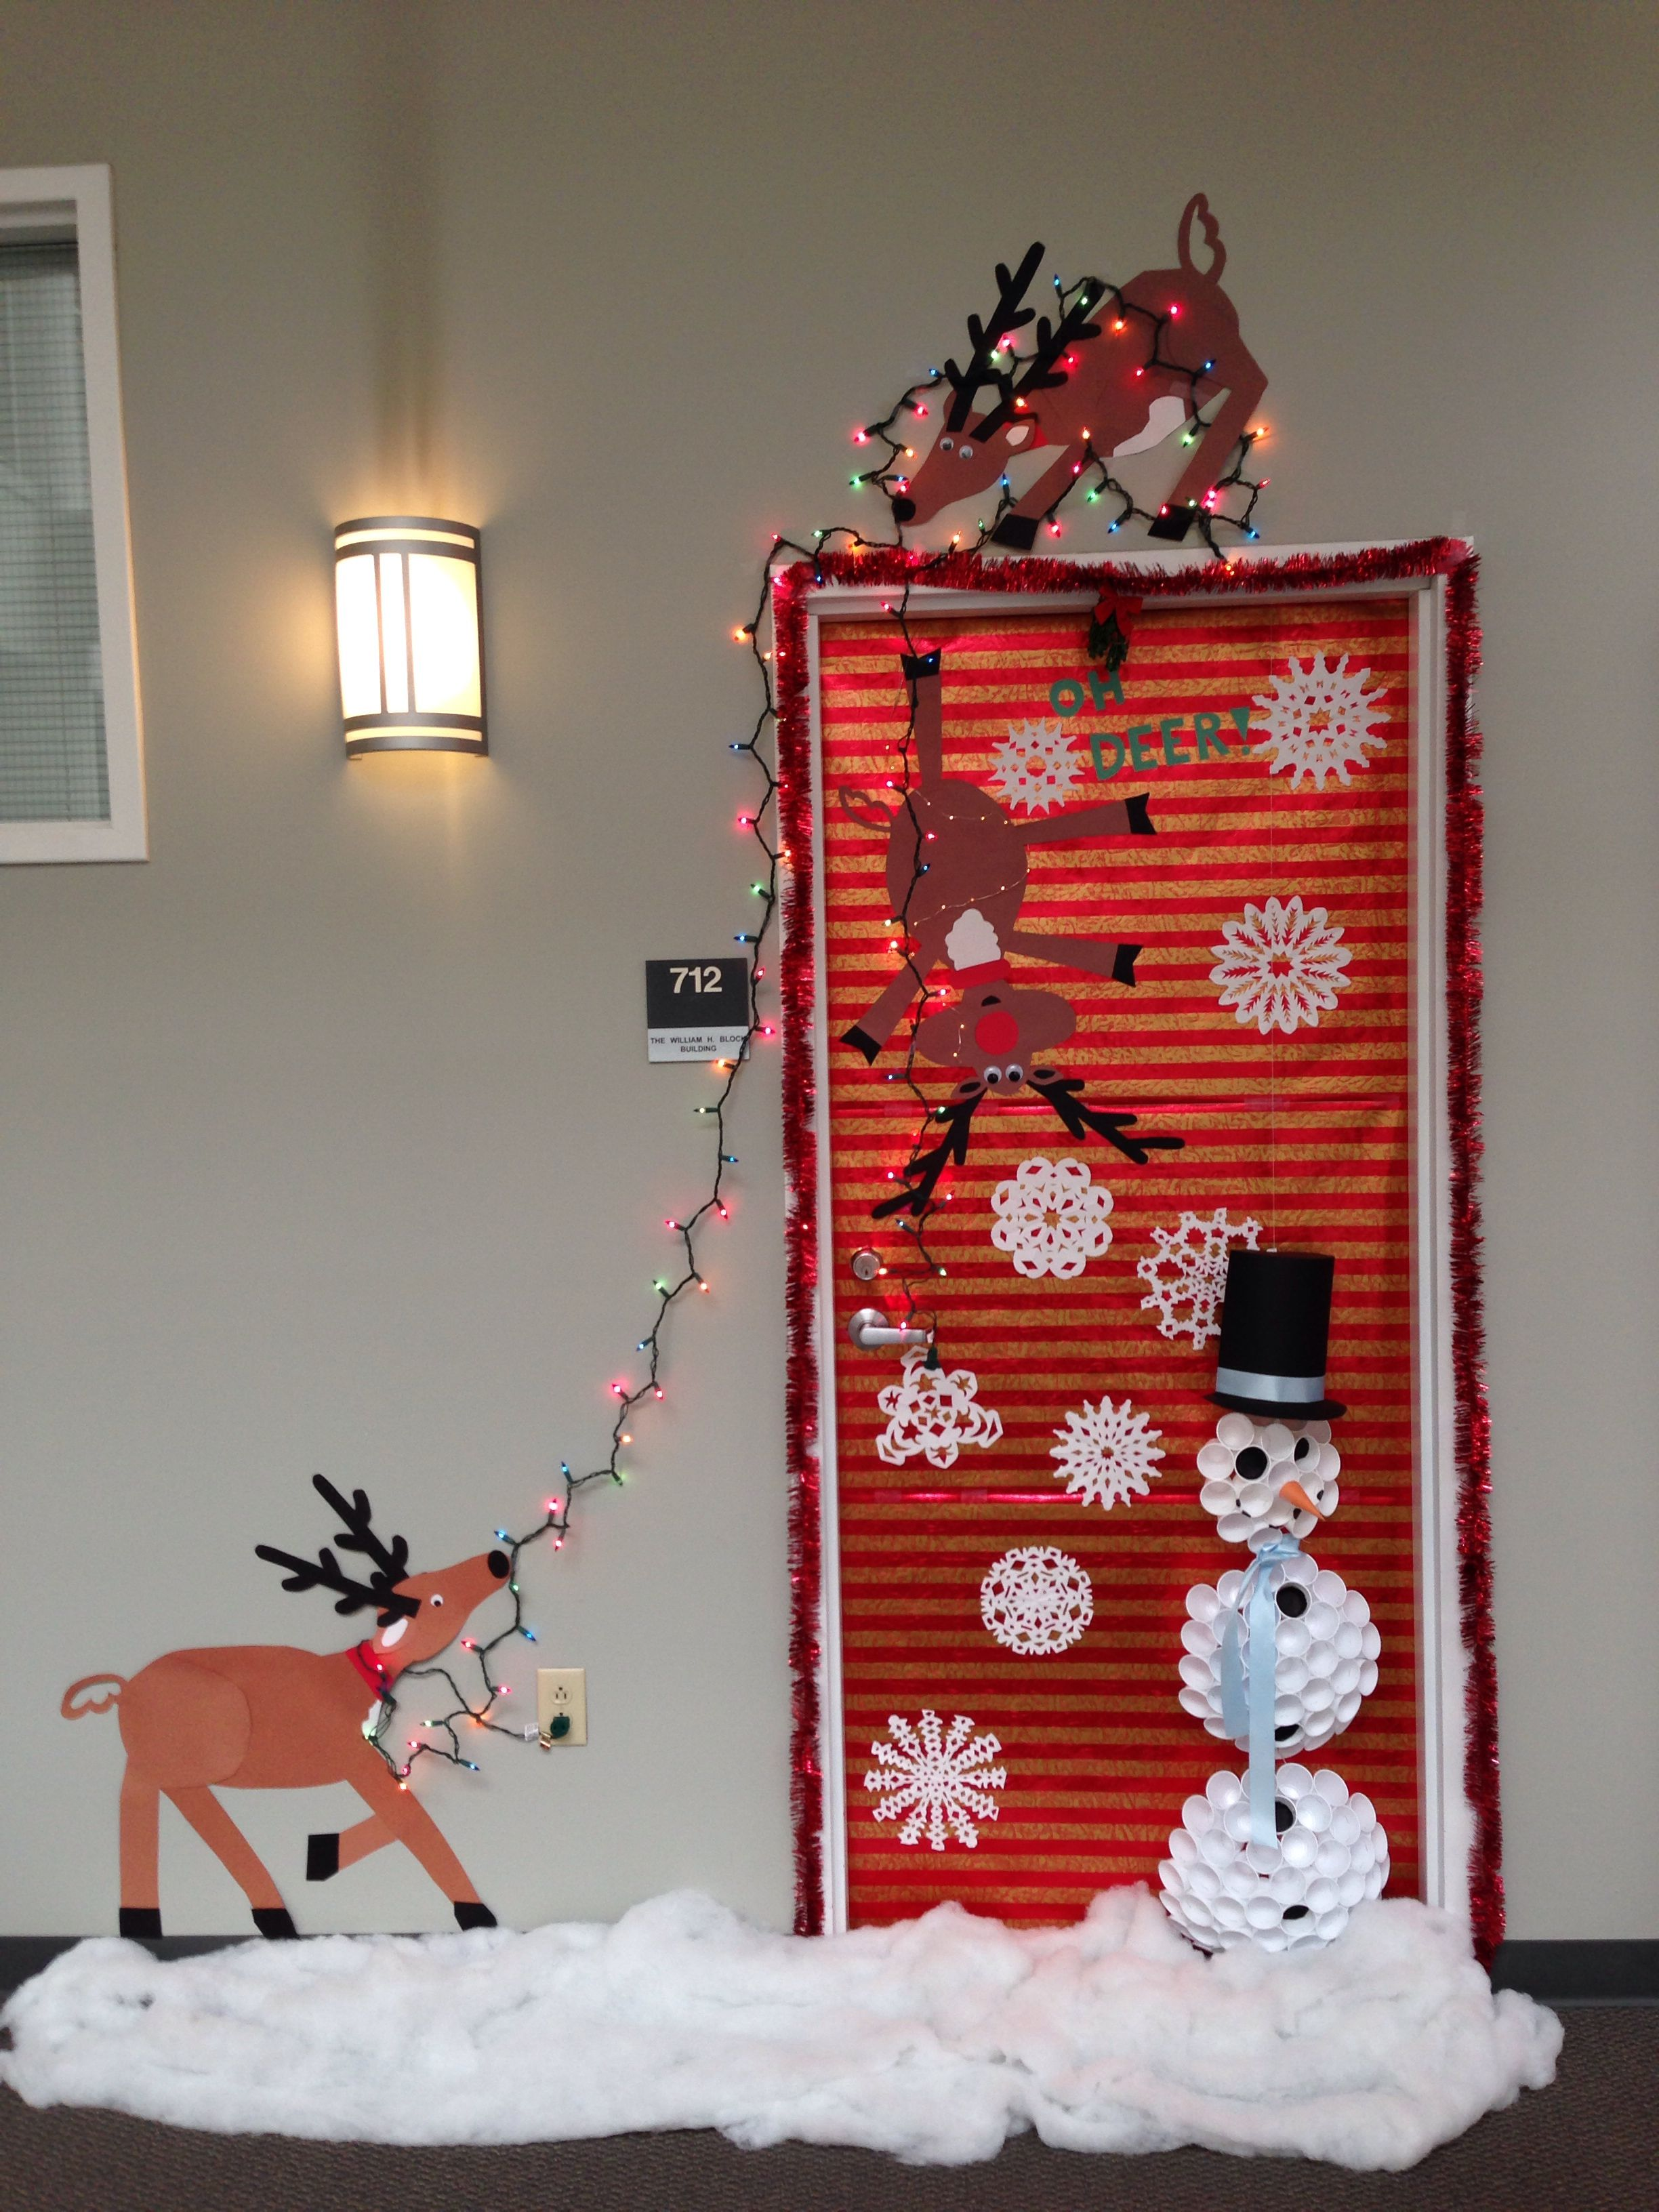 Construction Office Decorating Ideas Our Christmas Door Decoration First Place Made